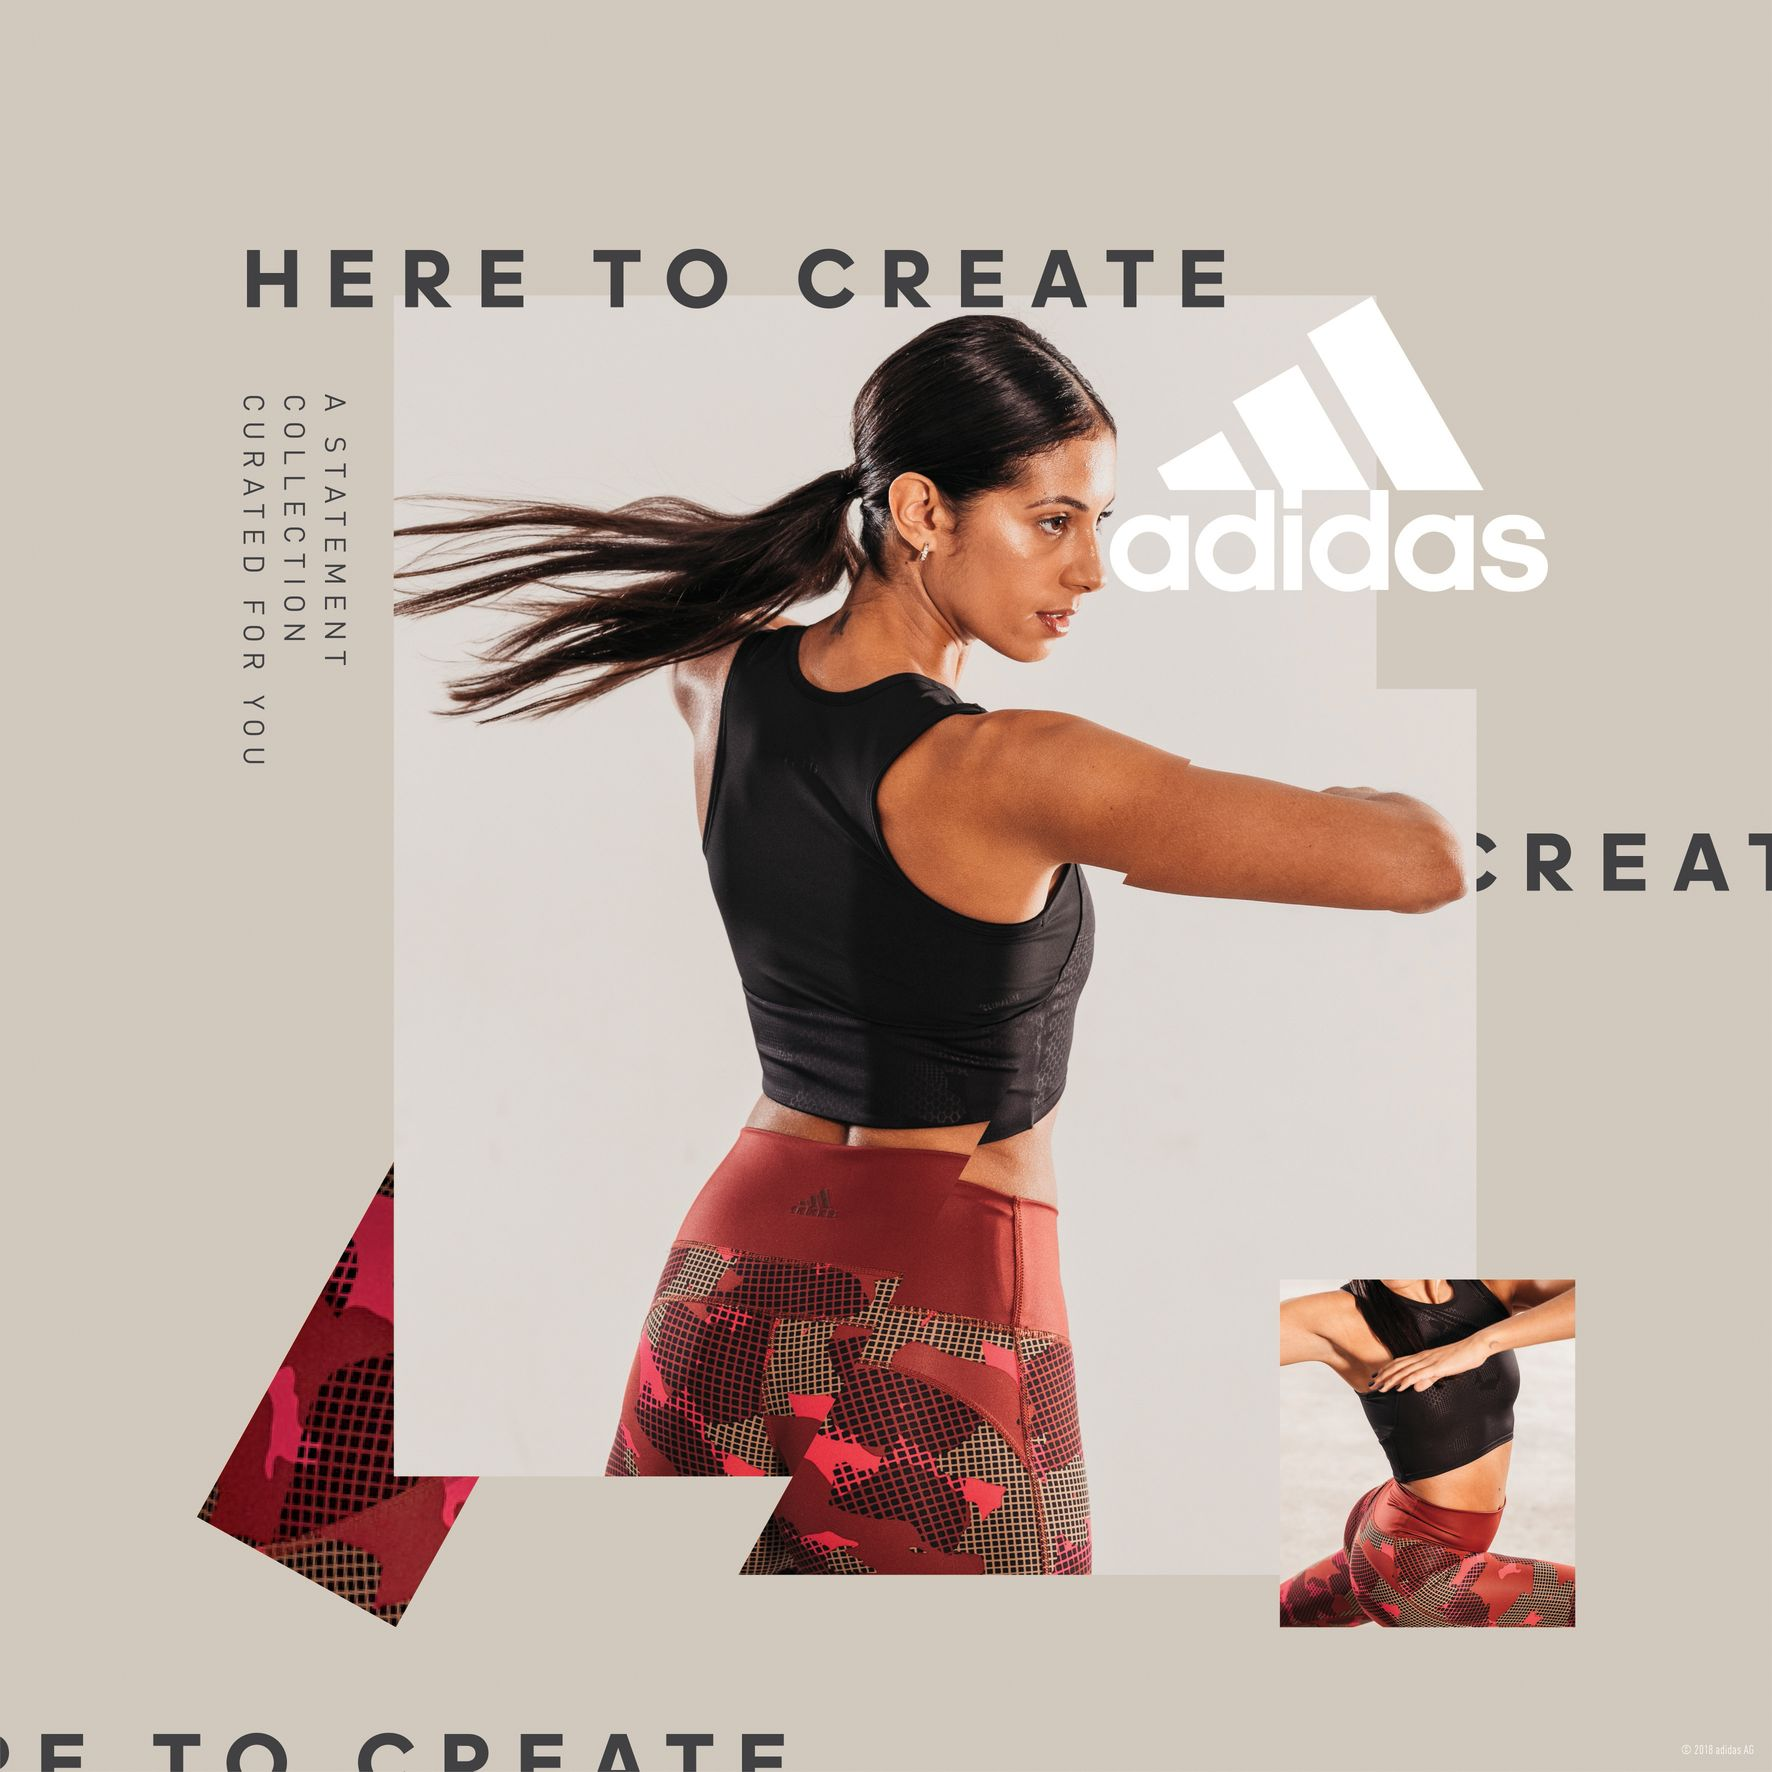 Adidas Women Statement Collection - Eleanna Lima